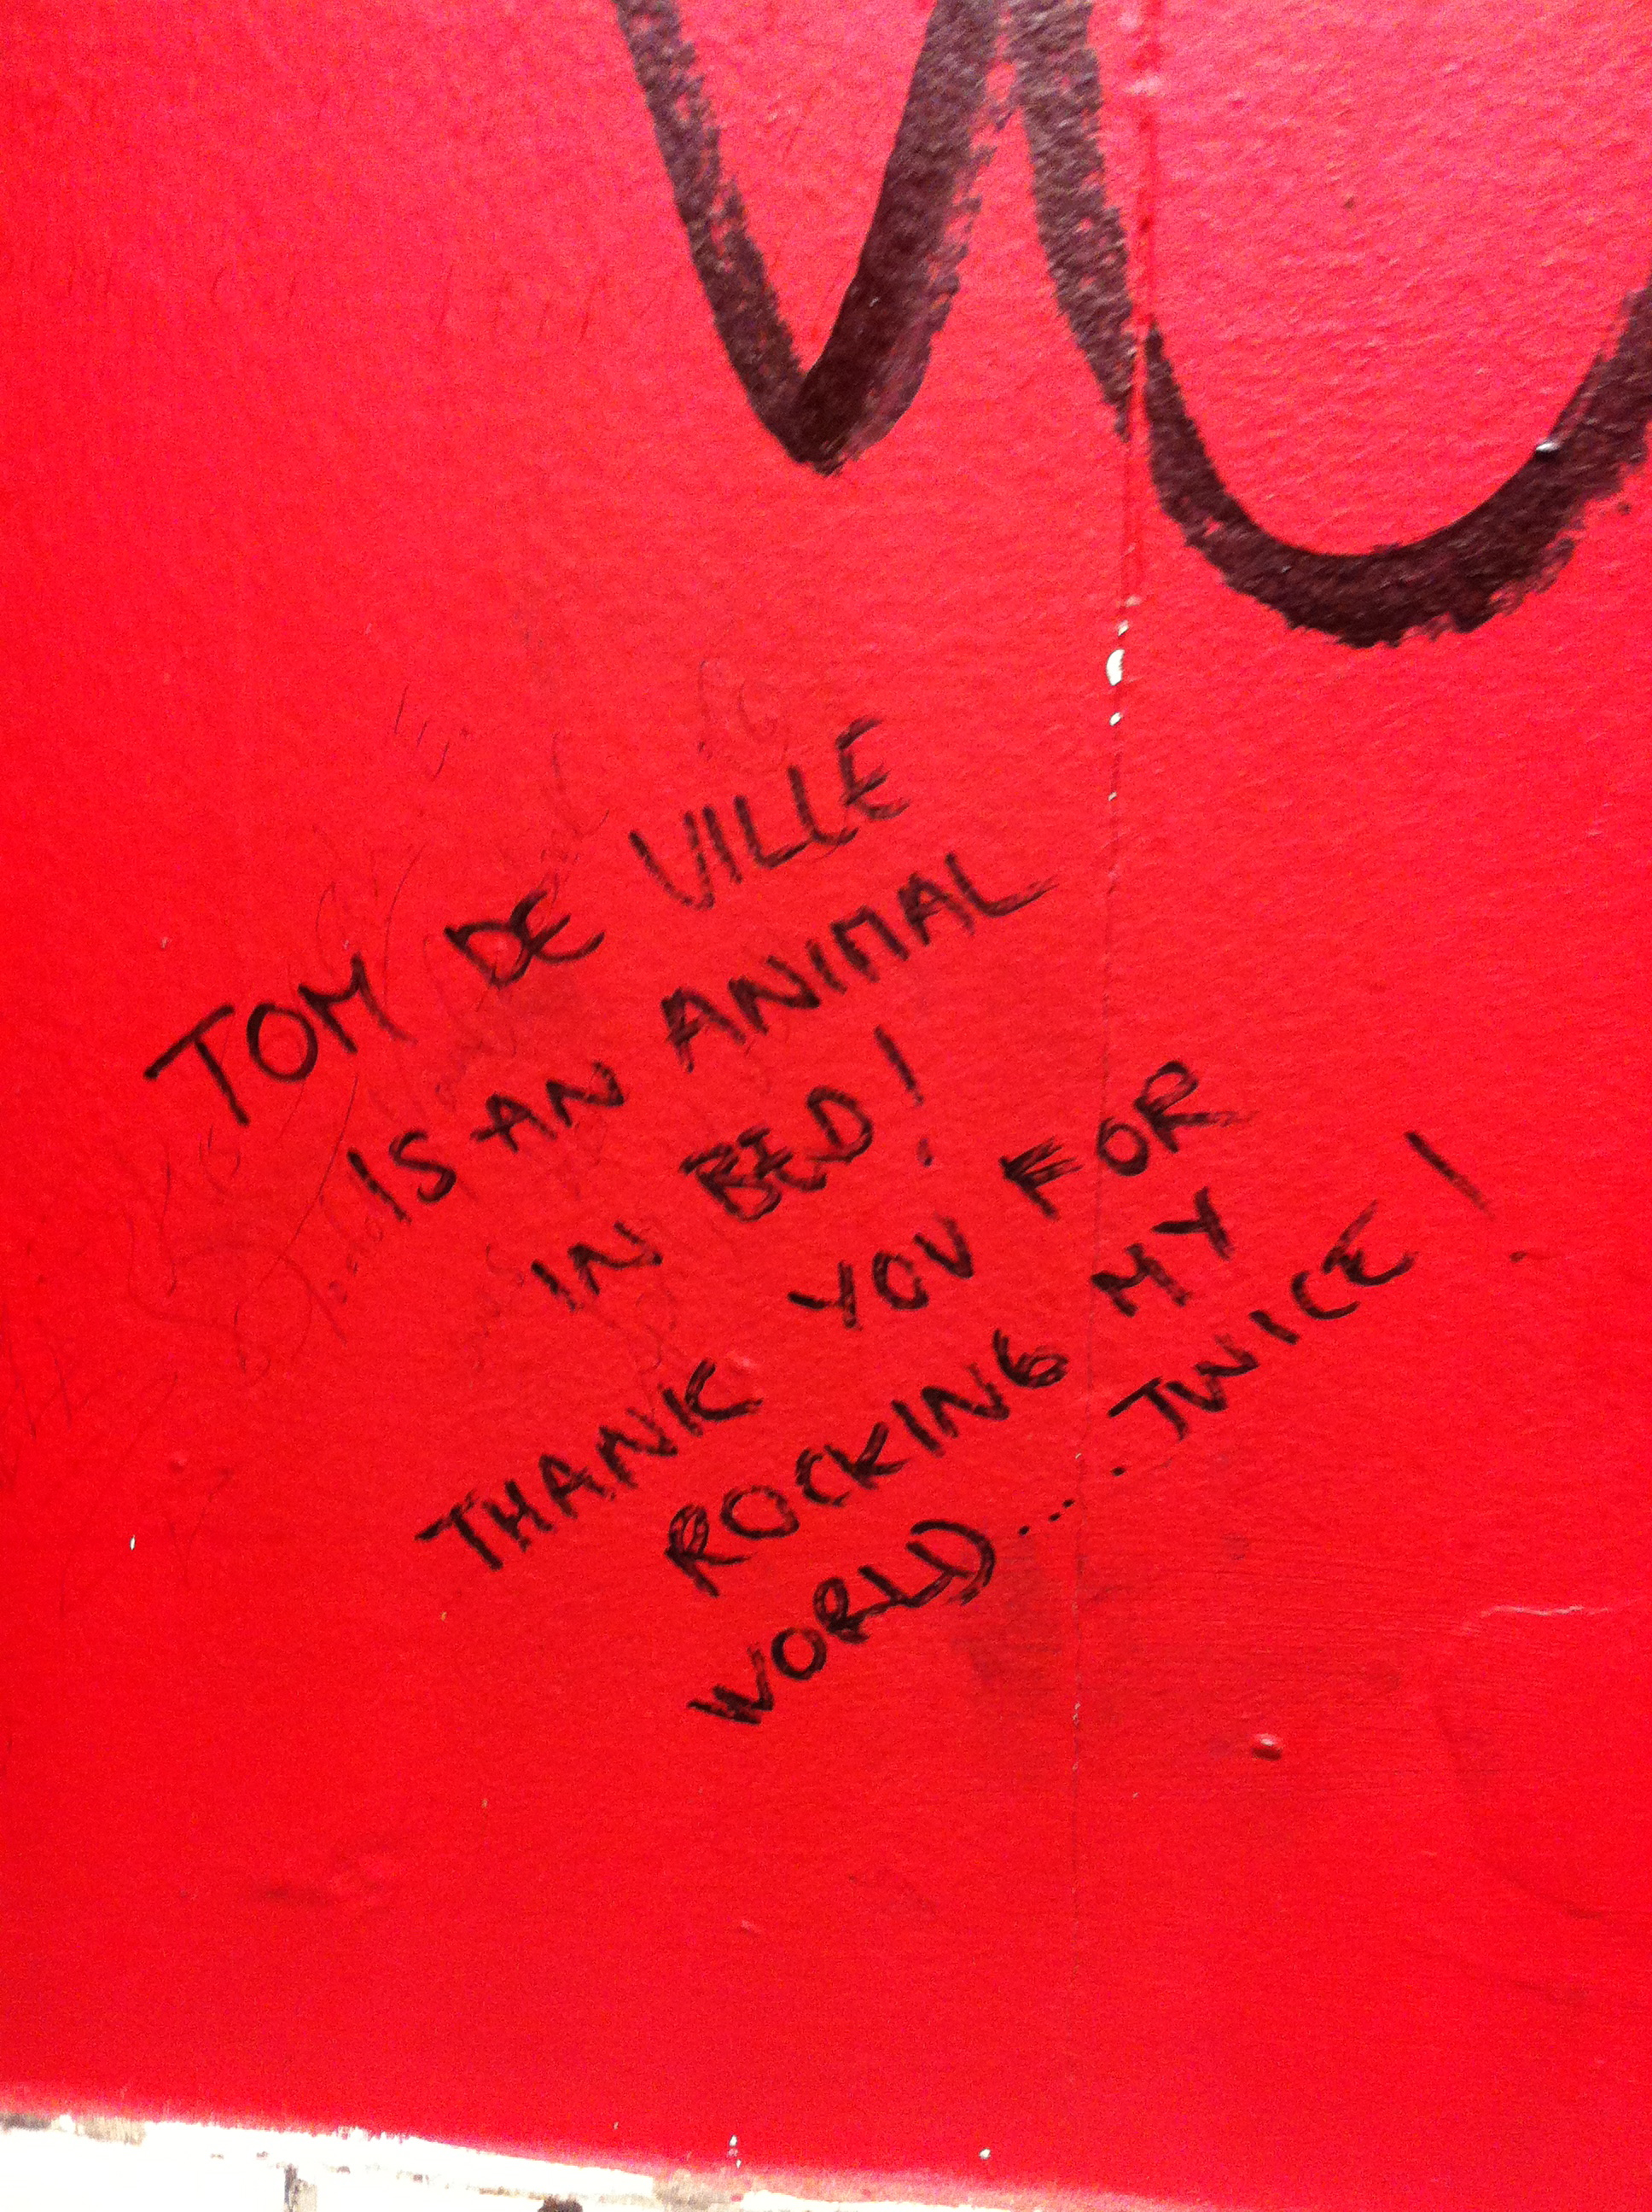 London Bathroom Graffiti - Song for the Soundtrack of Your Date